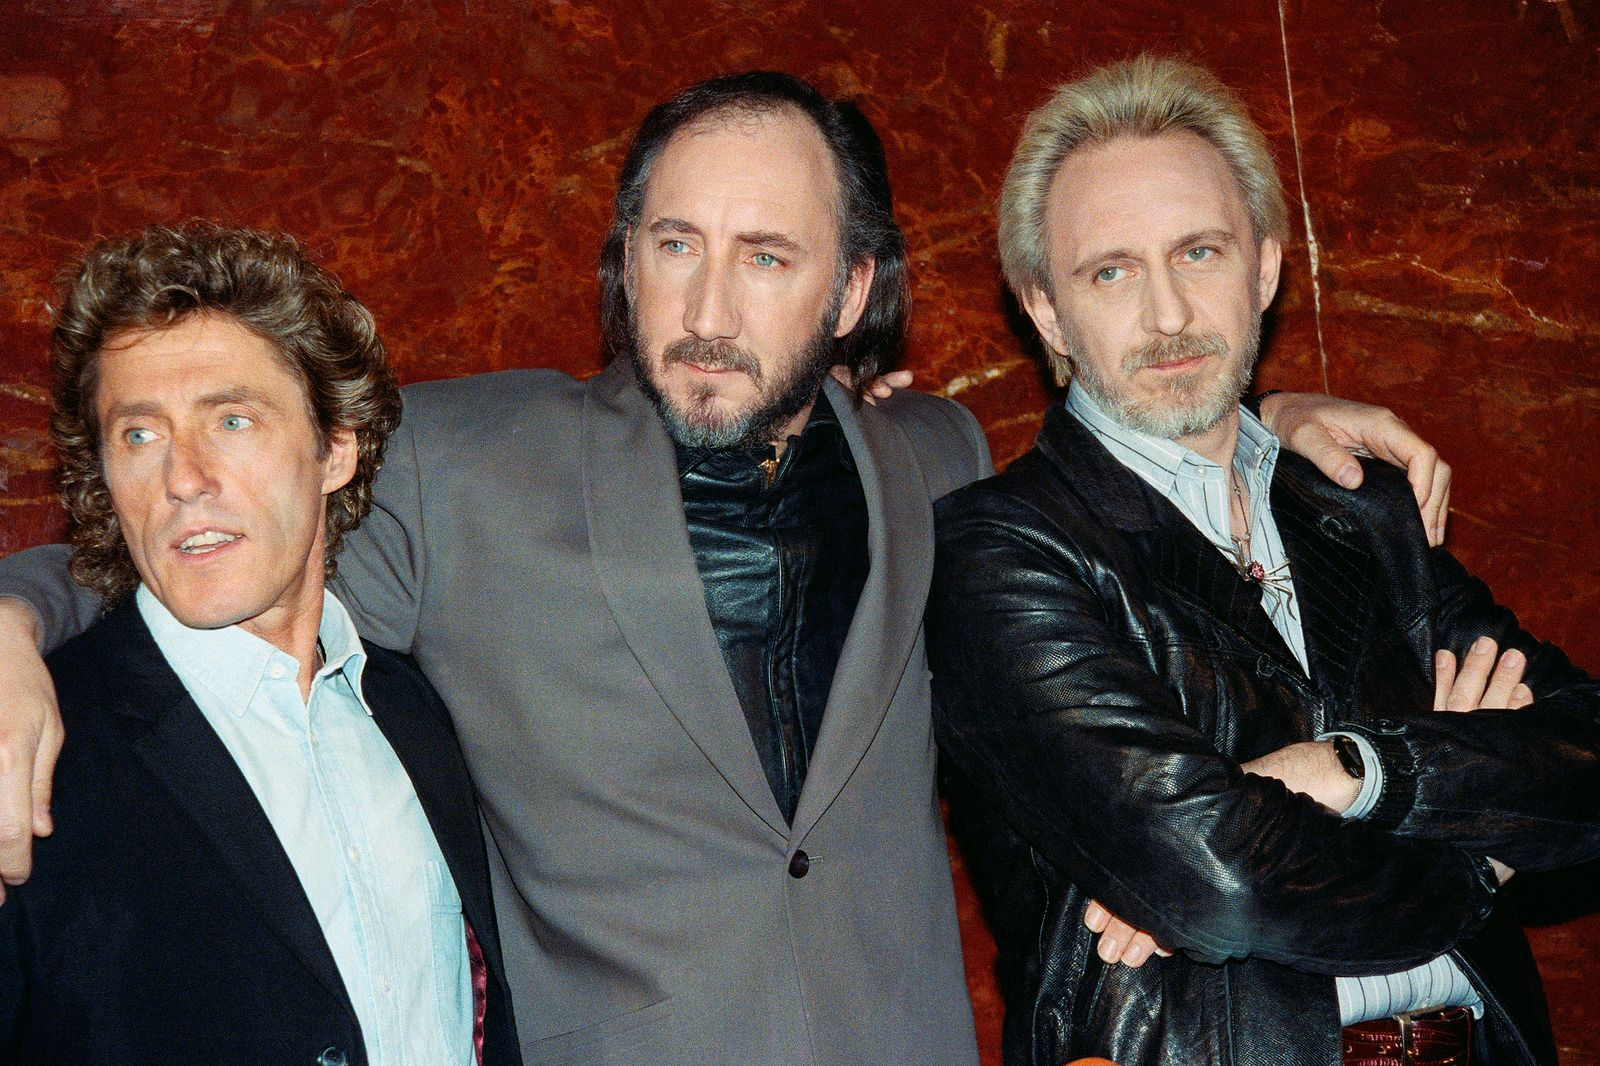 Pete Townshend - Roger Daltry and Peter Townshend